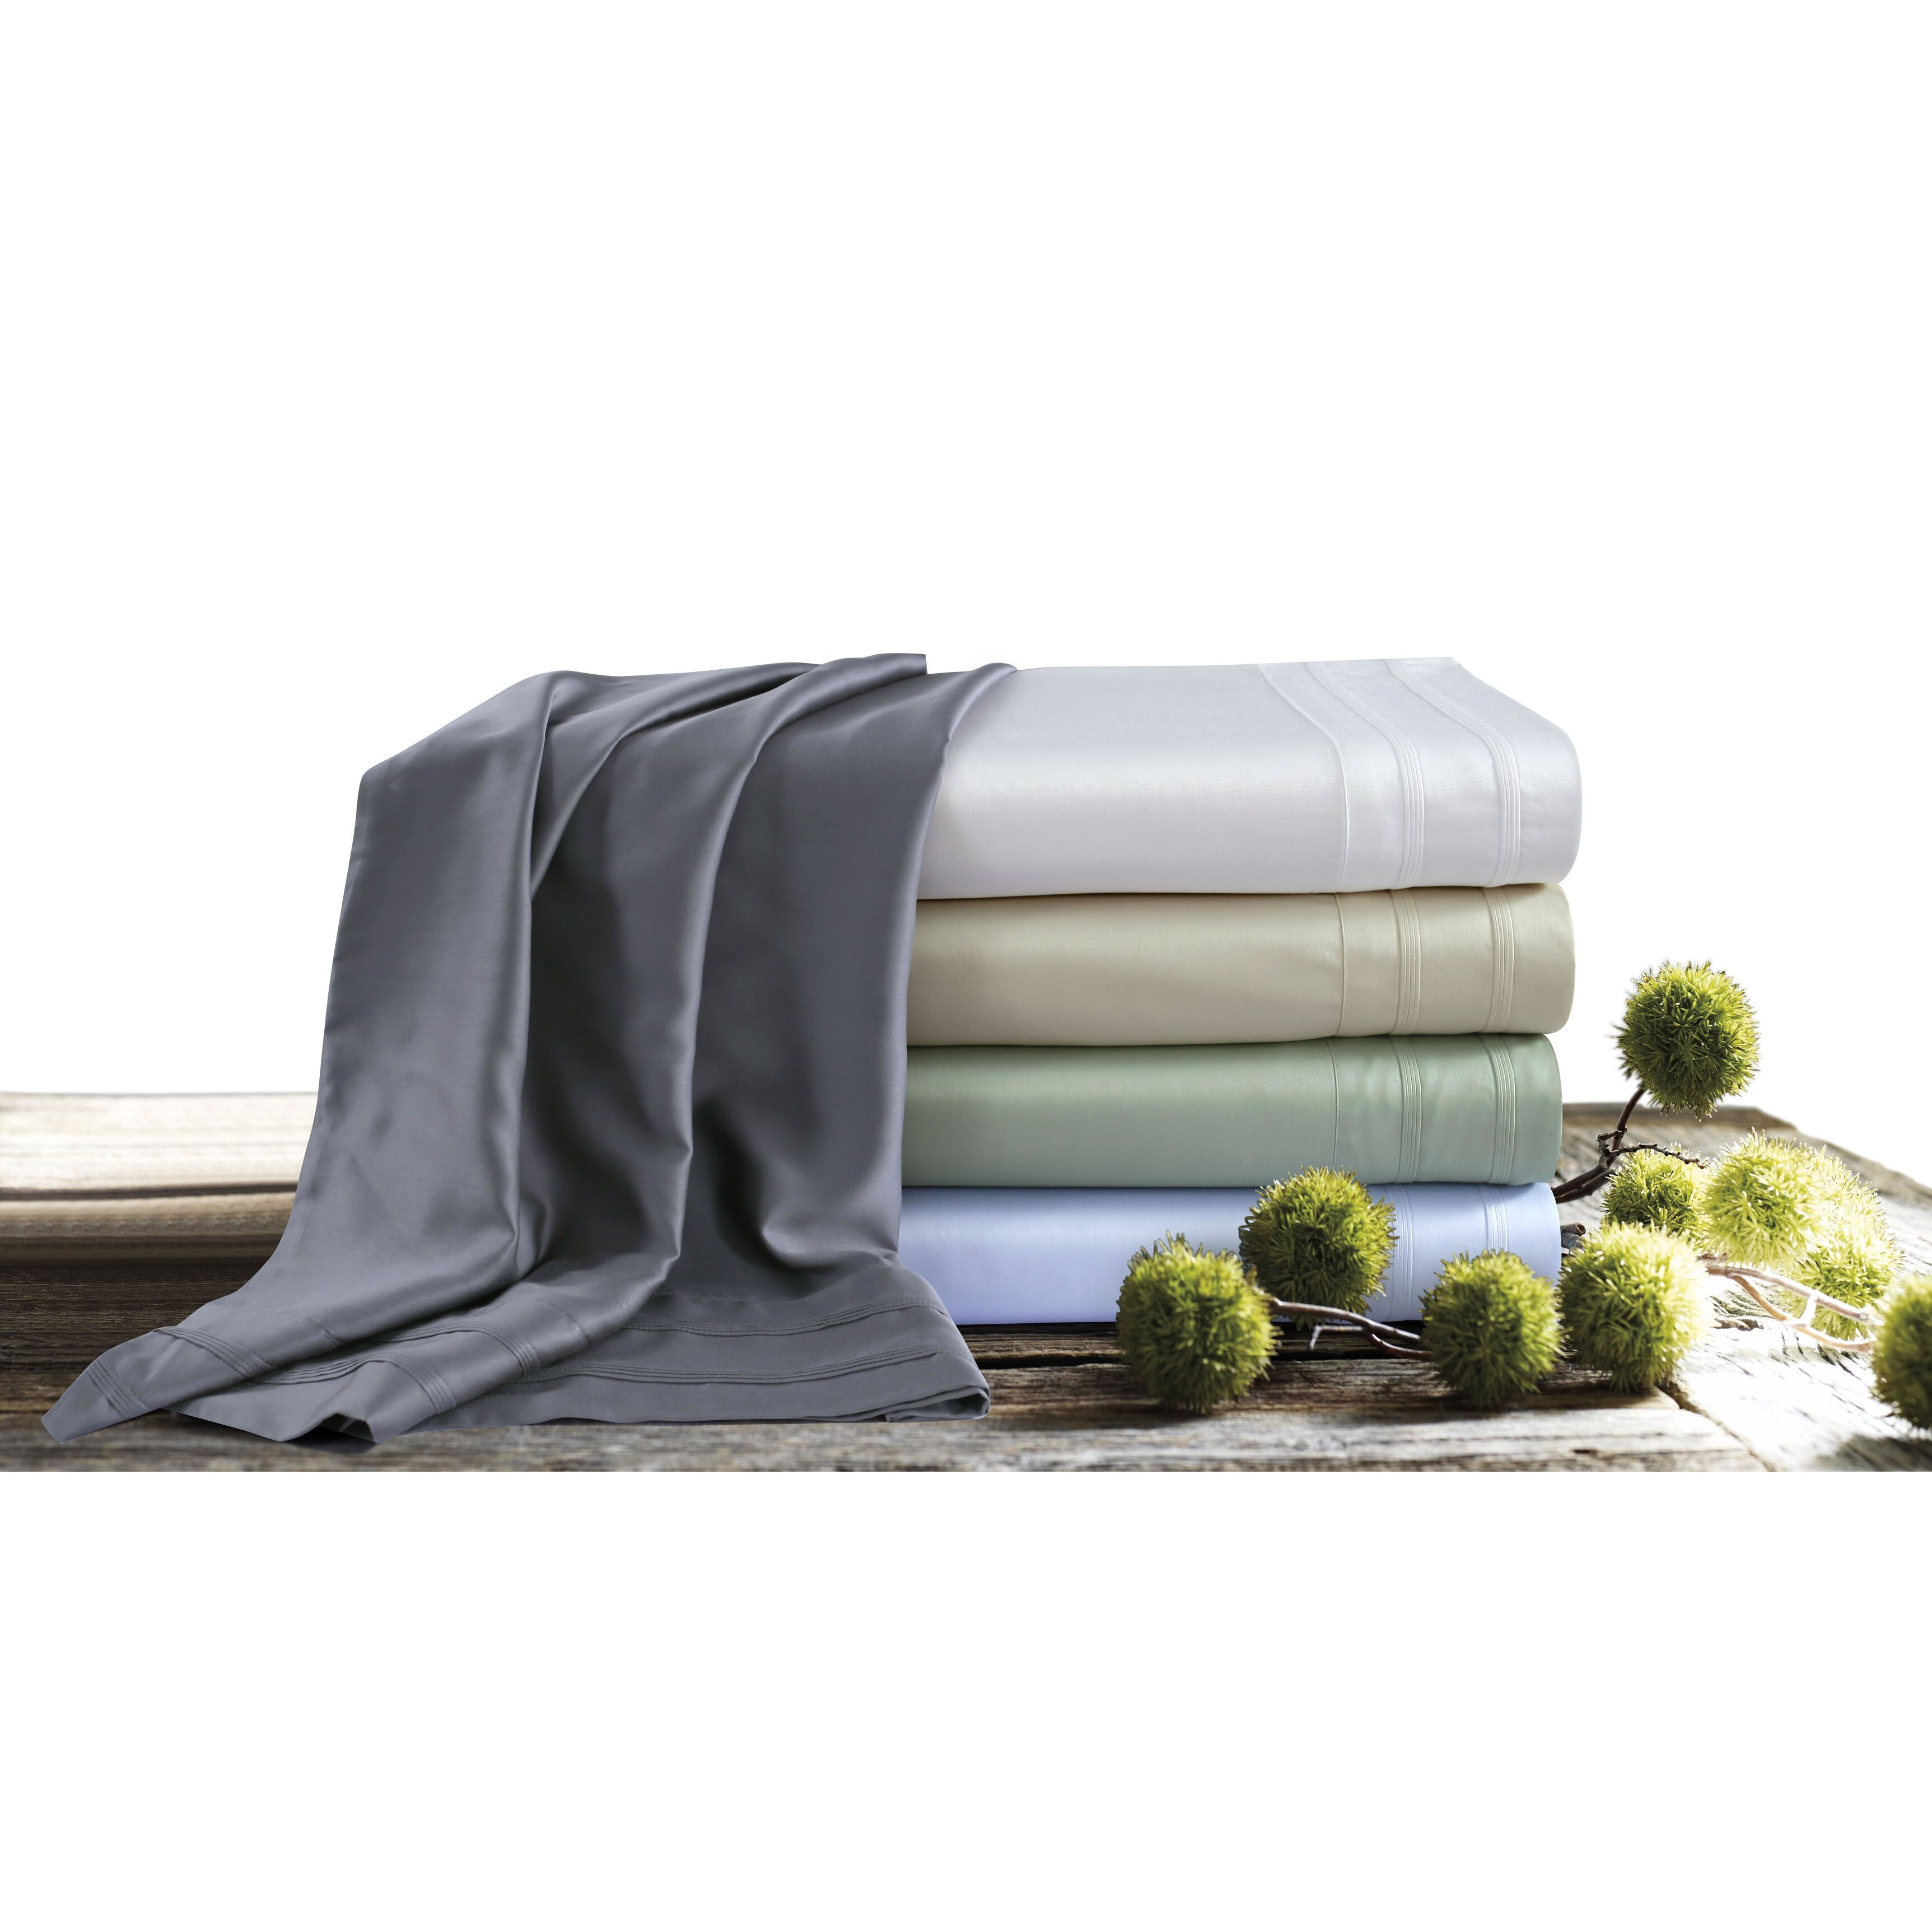 Extra deep pocket queen fitted sheets - Tribeca Living 300 Thread Count Extra Deep Pocket Sheet Set